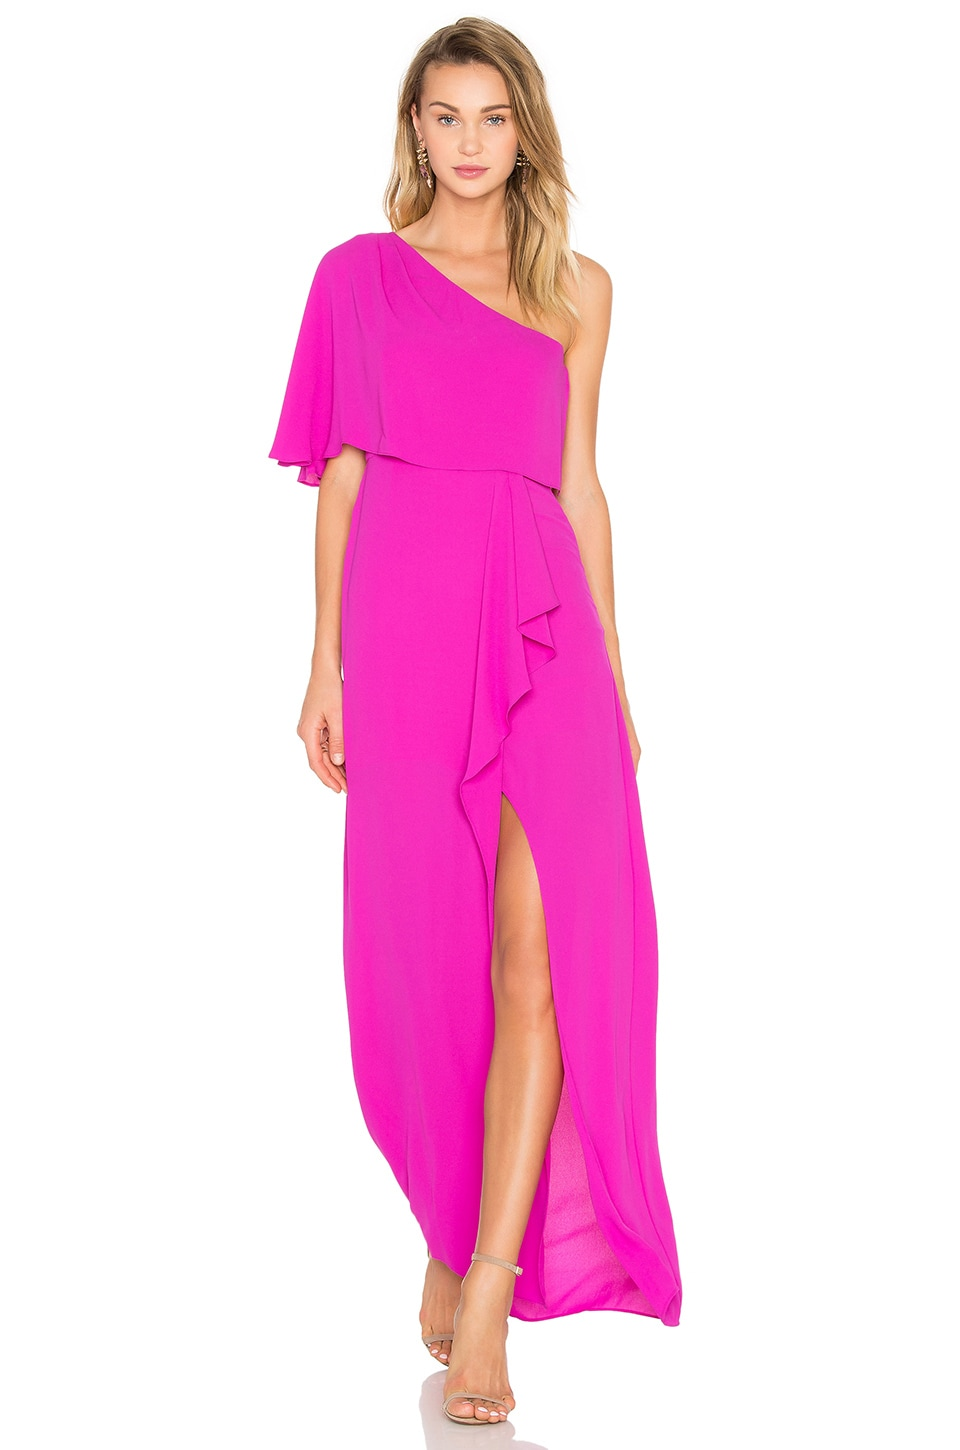 Secha One Shoulder Maxi Dress